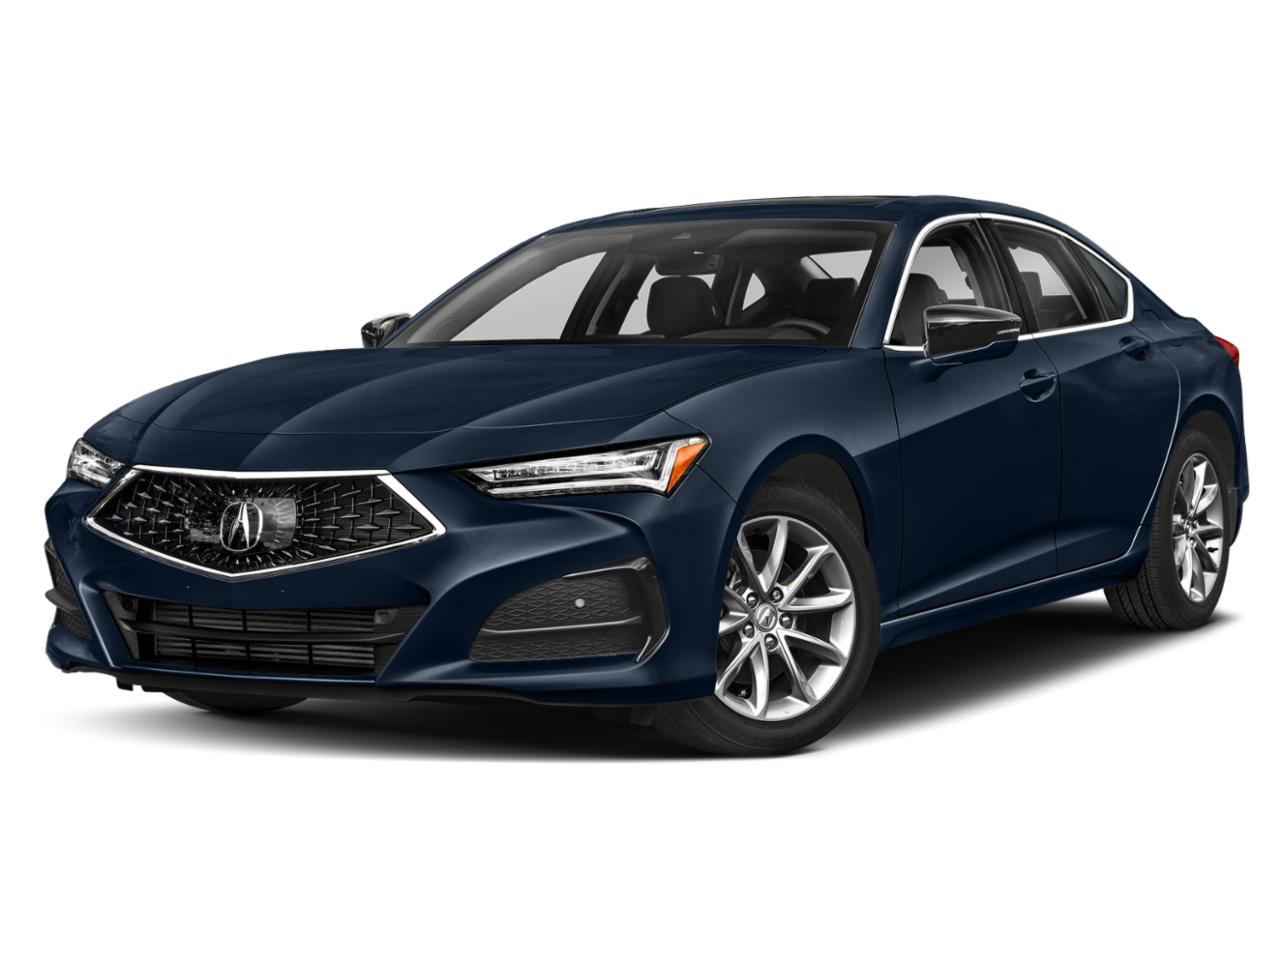 2021 Acura TLX Vehicle Photo in Grapevine, TX 76051